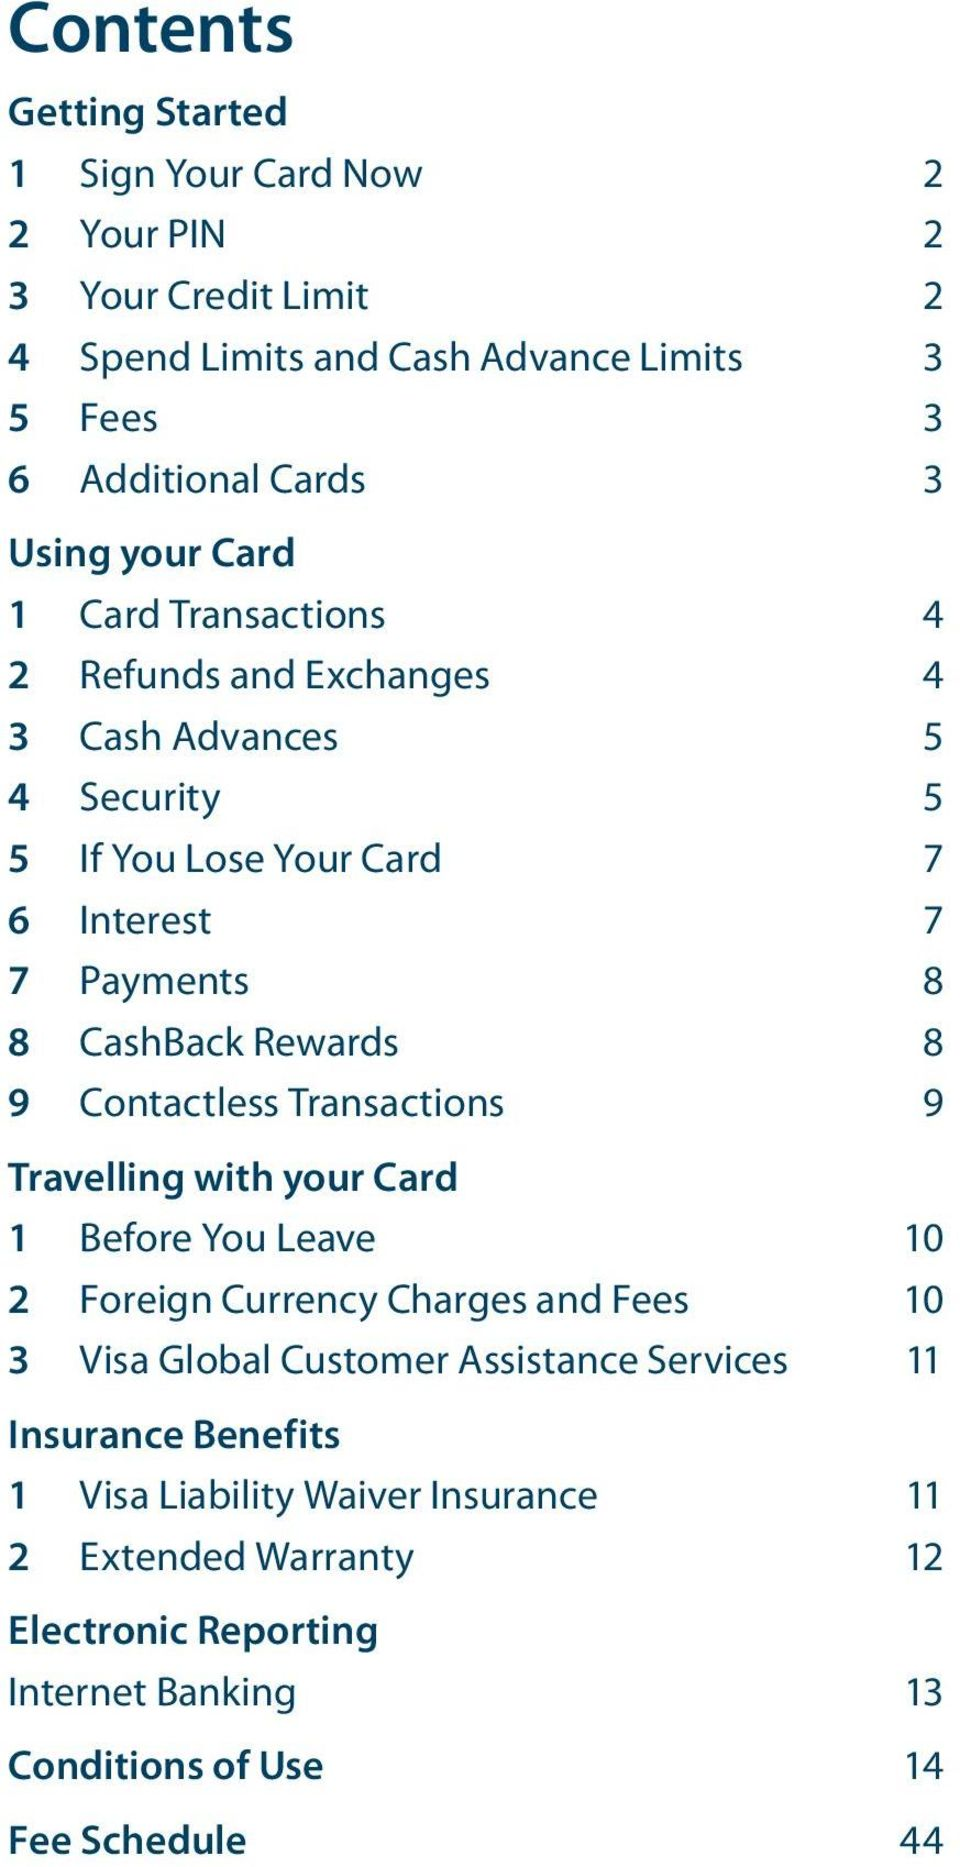 8 9 Contactless Transactions 9 Travelling with your Card 1 Before You Leave 10 2 Foreign Currency Charges and Fees 10 3 Visa Global Customer Assistance